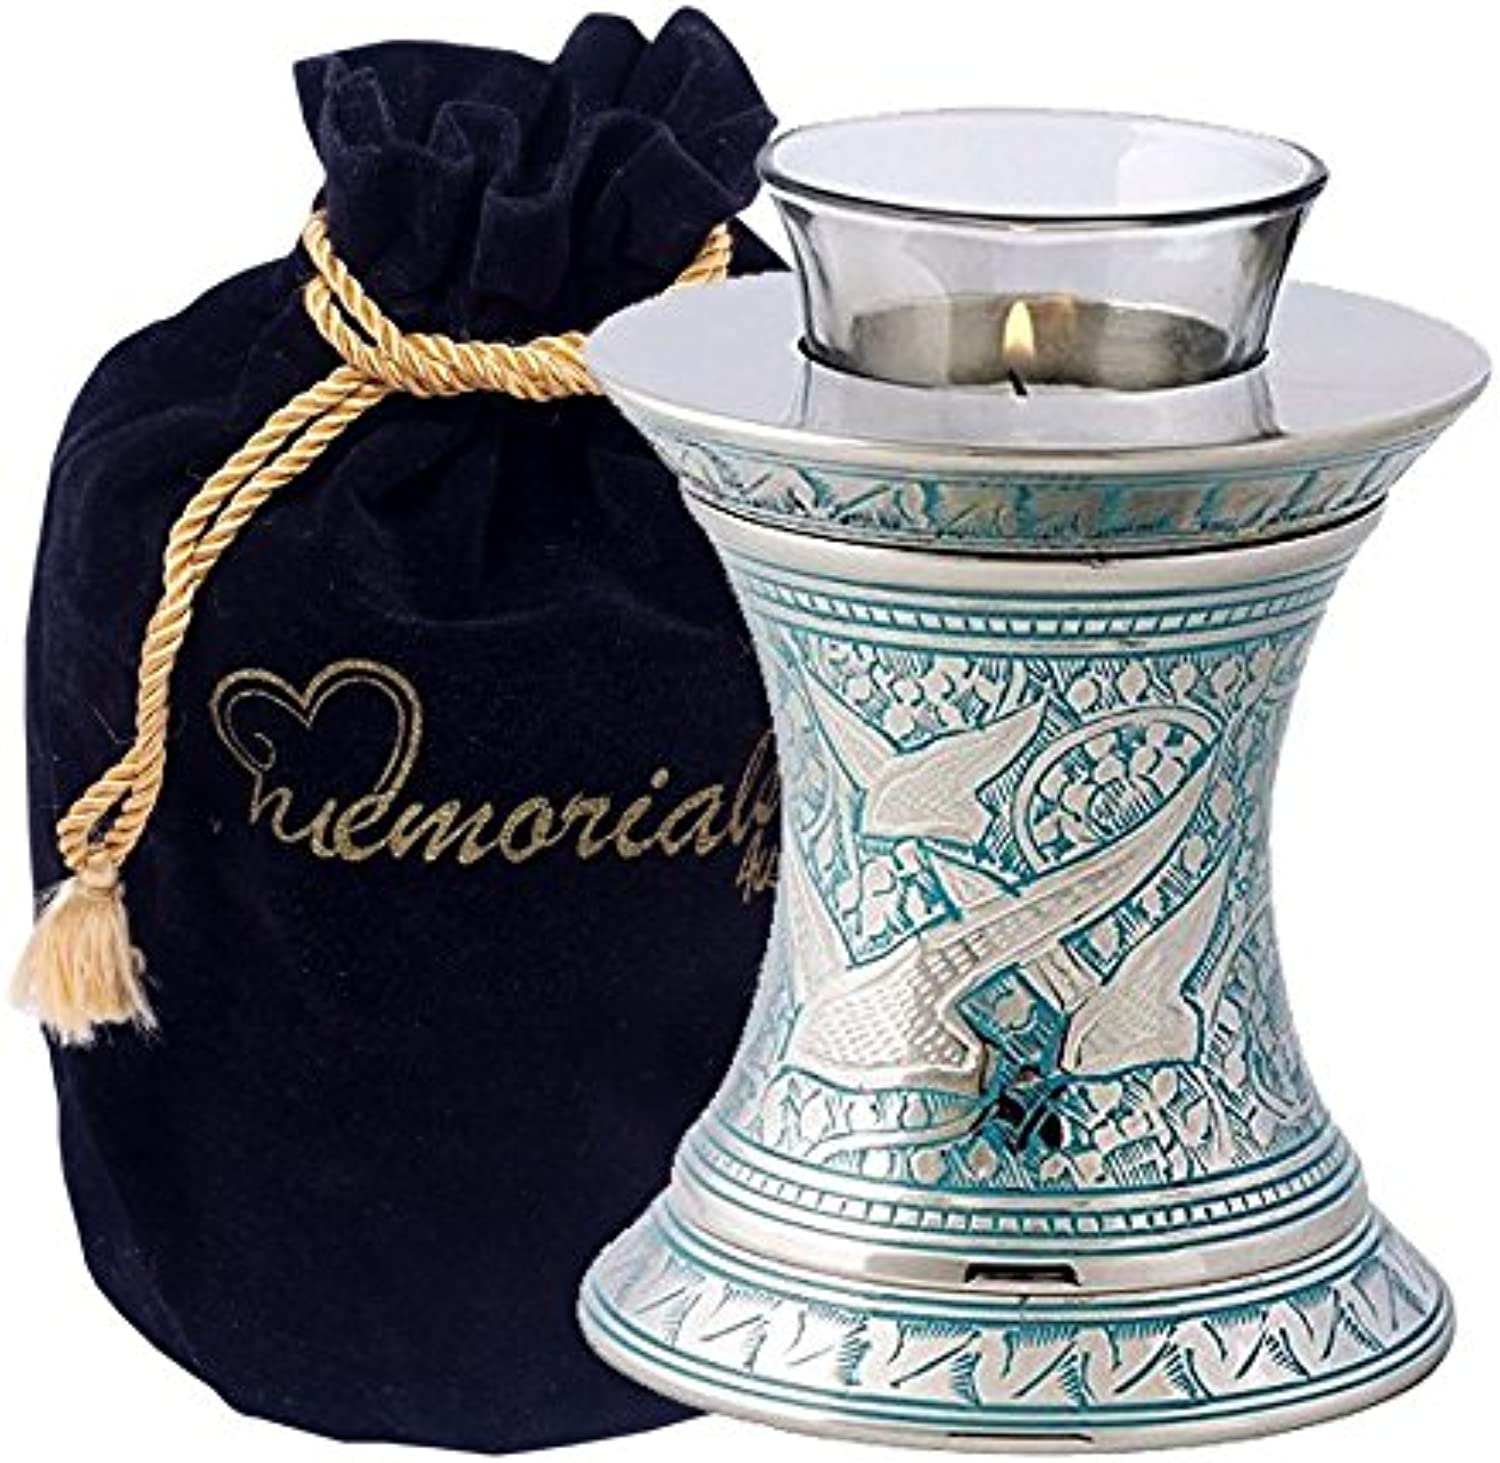 Wings of Freedom Brass Cremation Urn for Human Ashes - Solid Brass wings to eternity - Handcrafted Affordable Urn for Ashes - wings to eternity tealight urn with Free Velvet Bag or Box (Tealight)